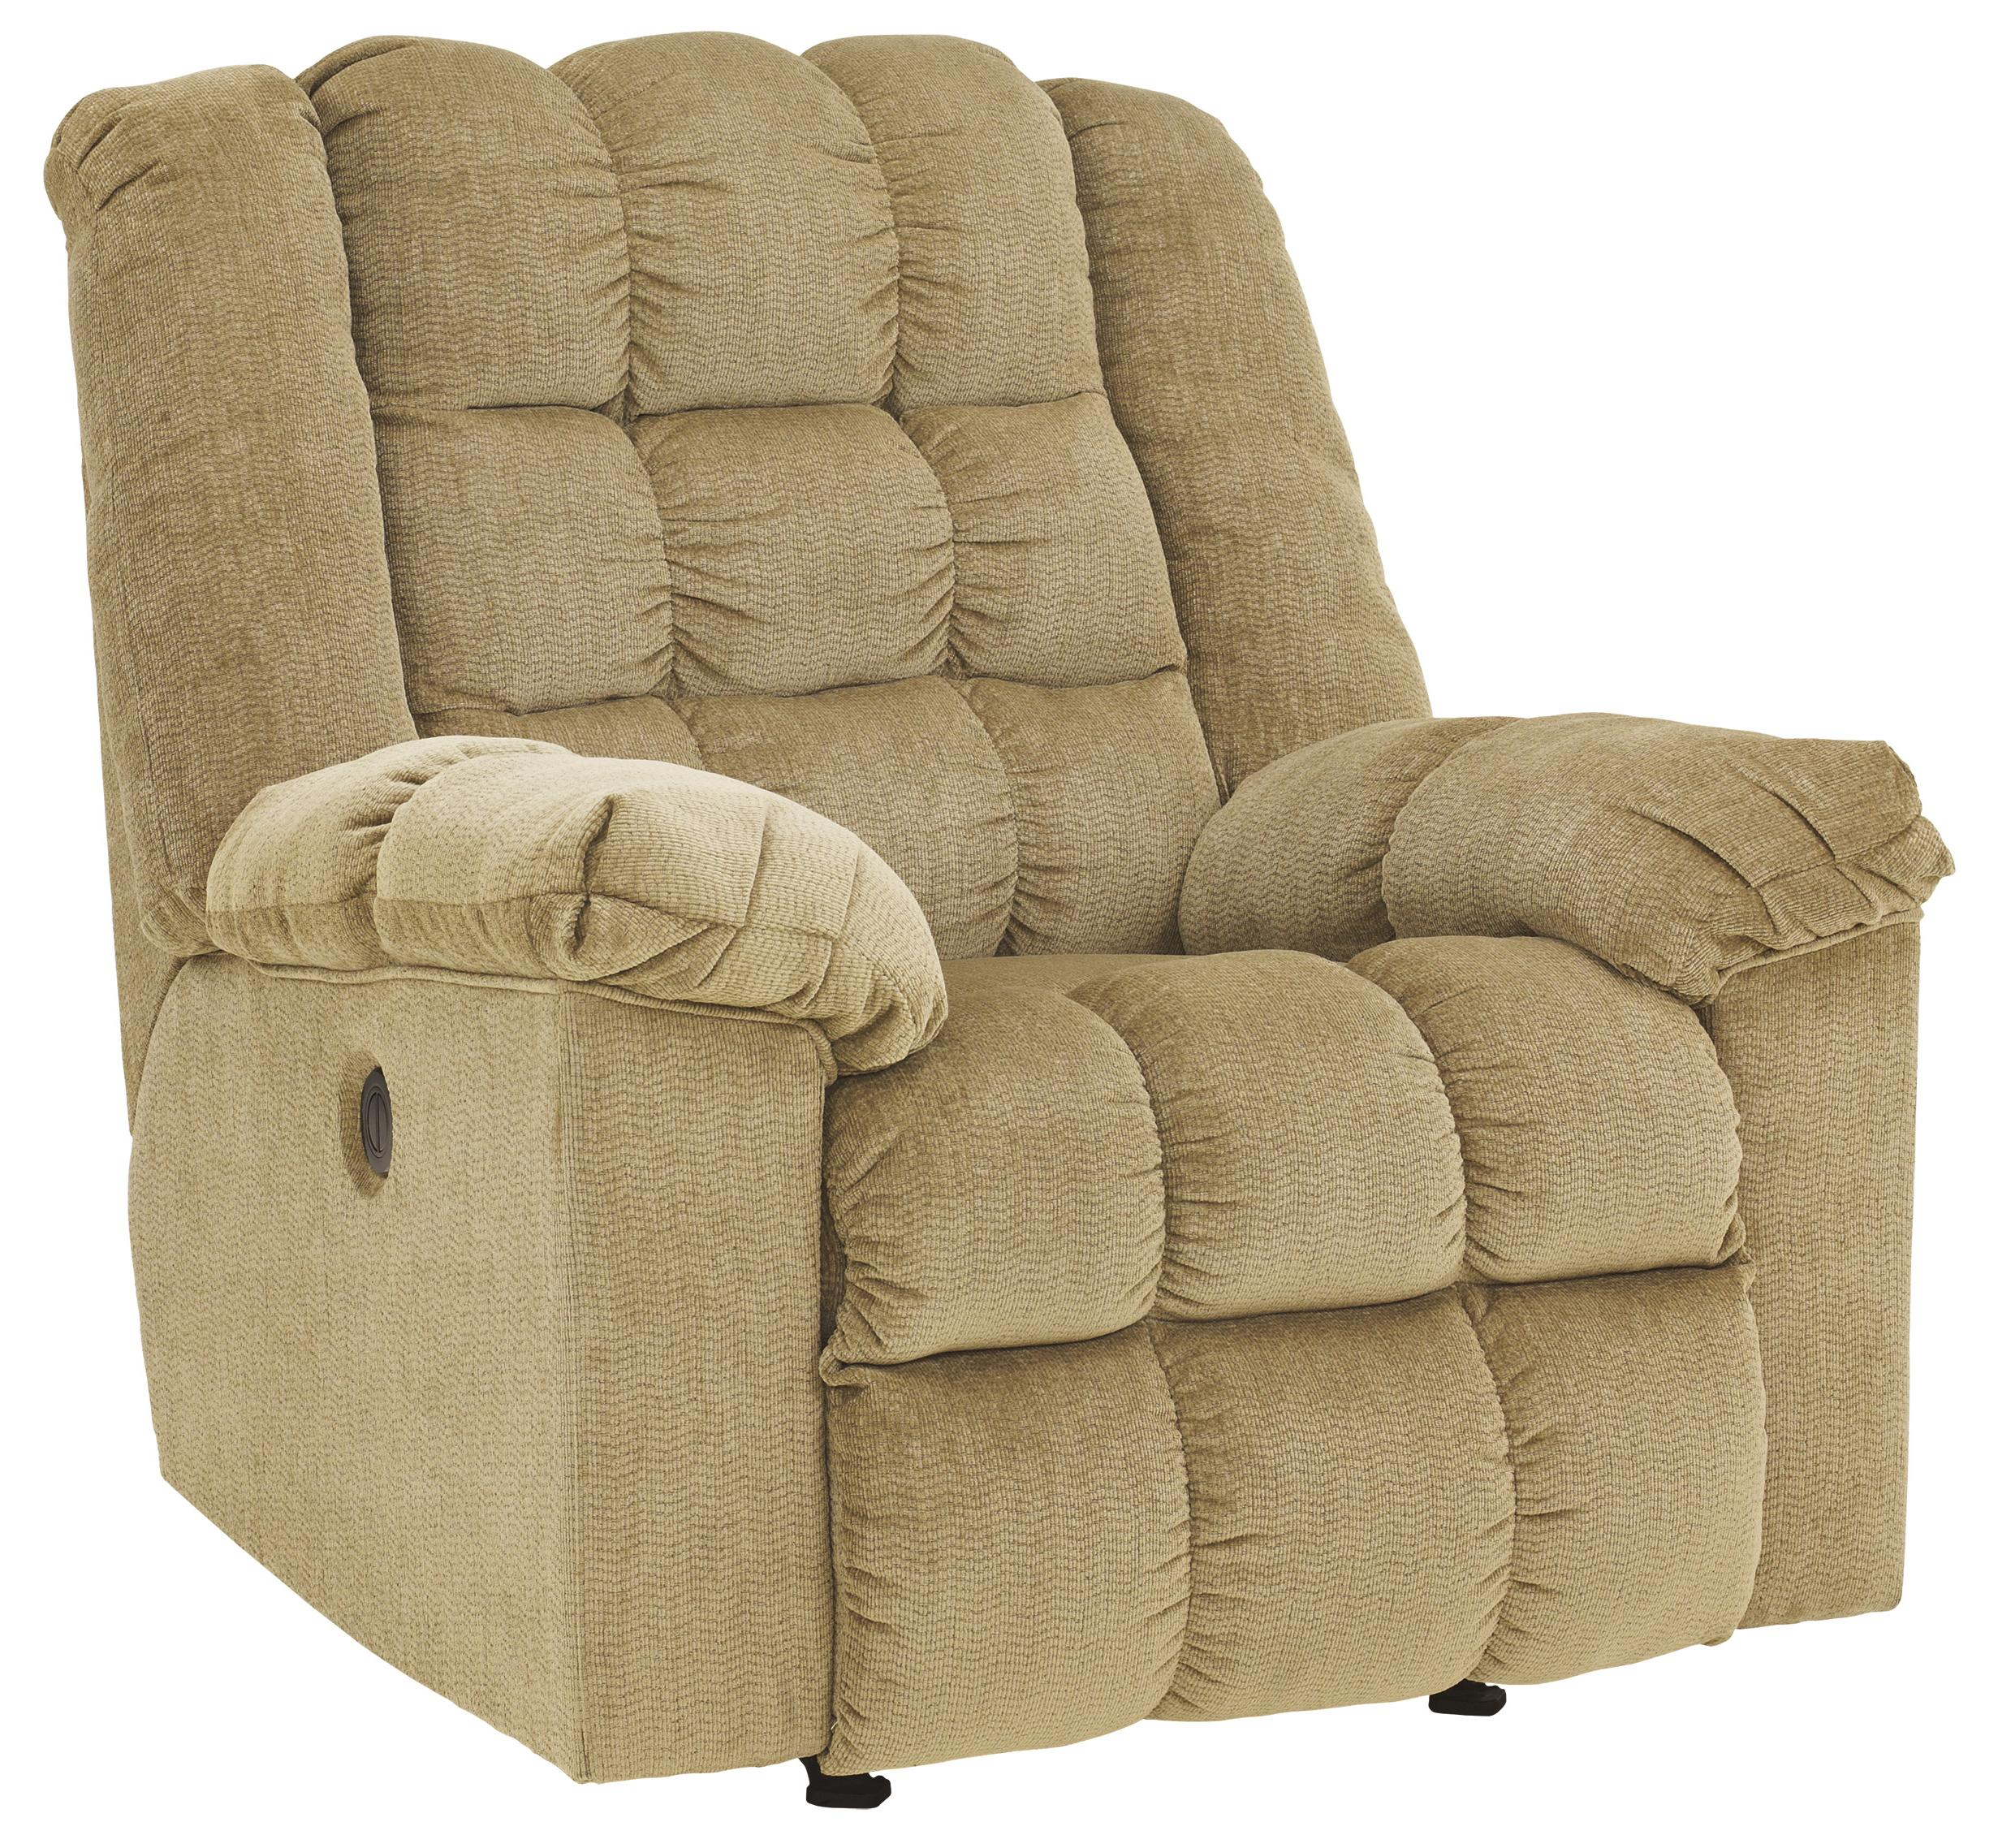 Ludden - Sand Power Rocker Recliner by Ashley (Signature Design) at Johnny Janosik